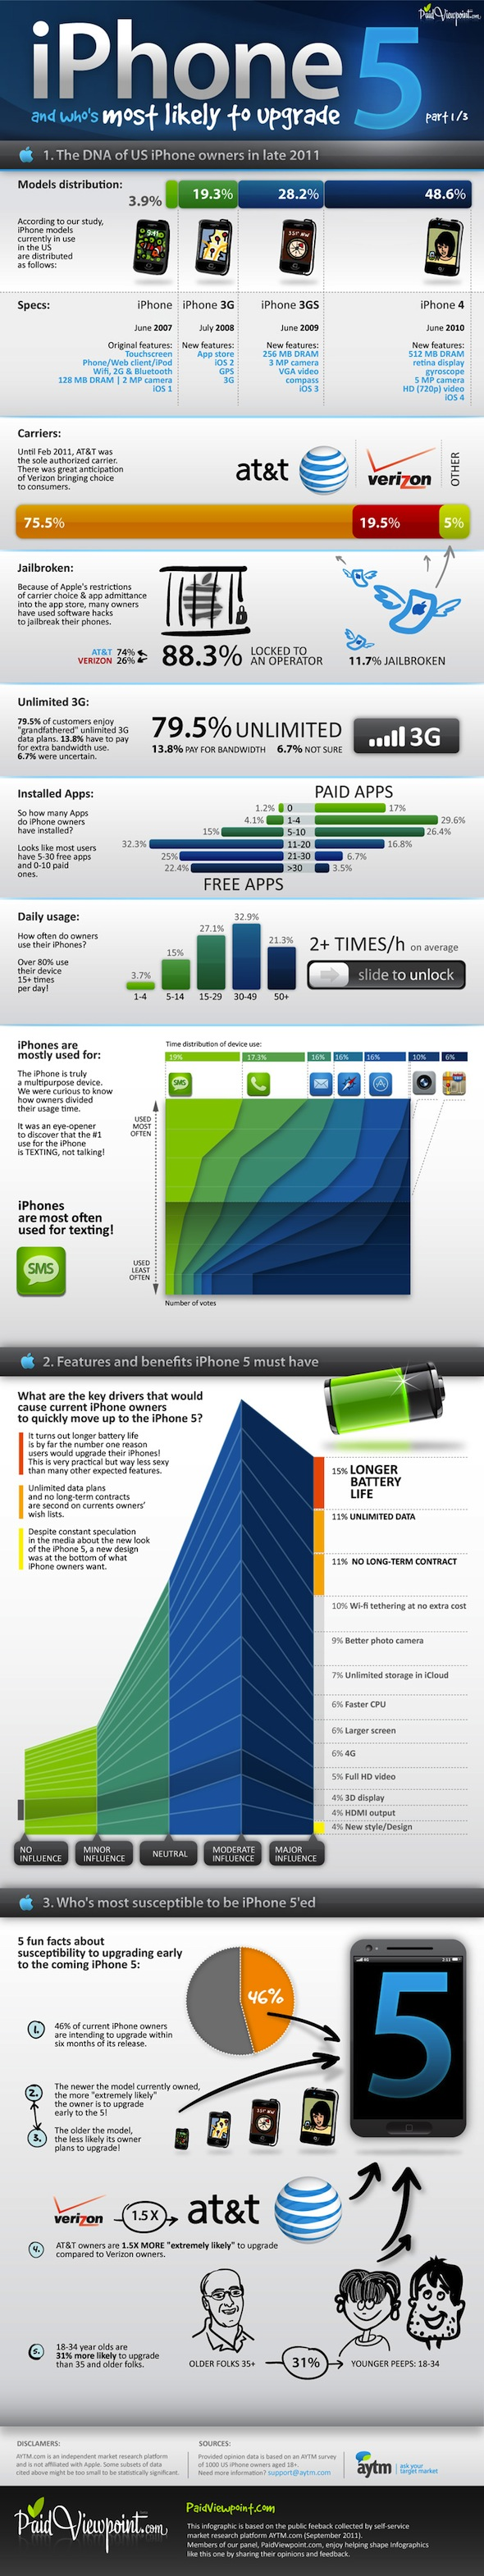 iPhone 5: Will You Upgrade?